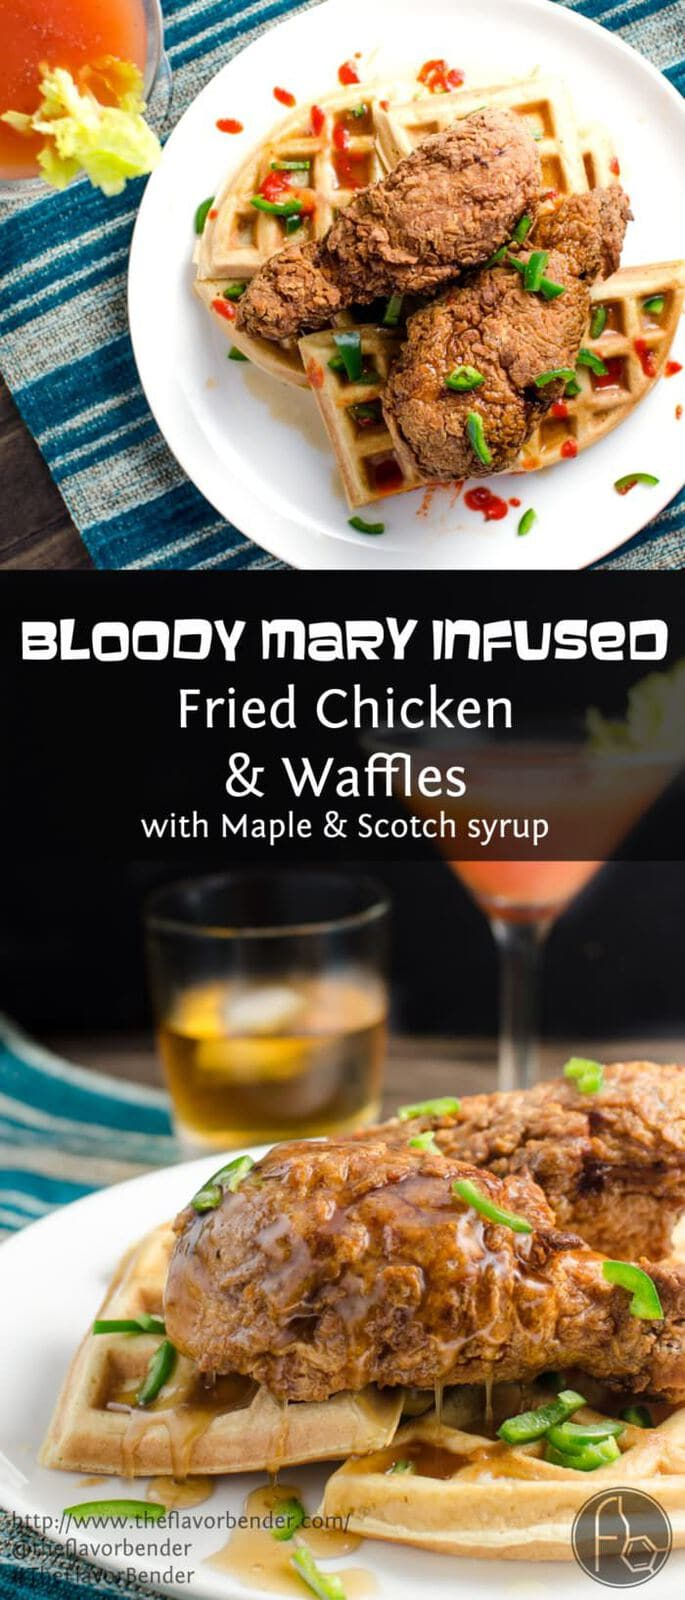 Bloody Mary infused Fried Chicken and Waffles - An Archer inspired breakfast with Crispy Crunchy Fried Chicken Drumsticks infused with all the flavors of a Bloody Mary plus Scotch and extra dose of spice! CLICK for the recipe now, REPIN for later! #TheFlavorBender